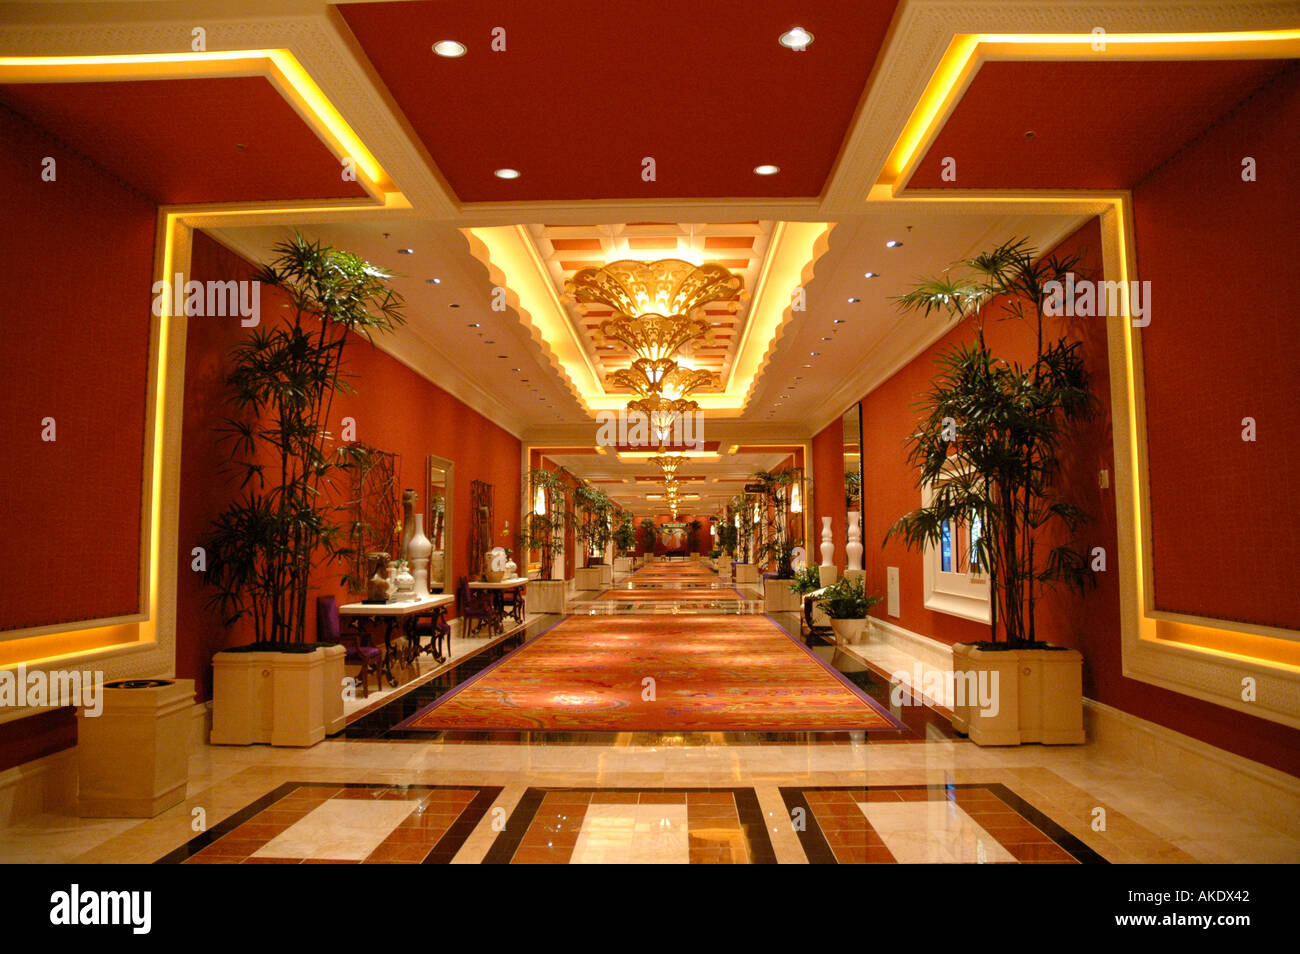 Las Vegas Nevada Wynn Hotel Interior Hallway Business Center Red Decor